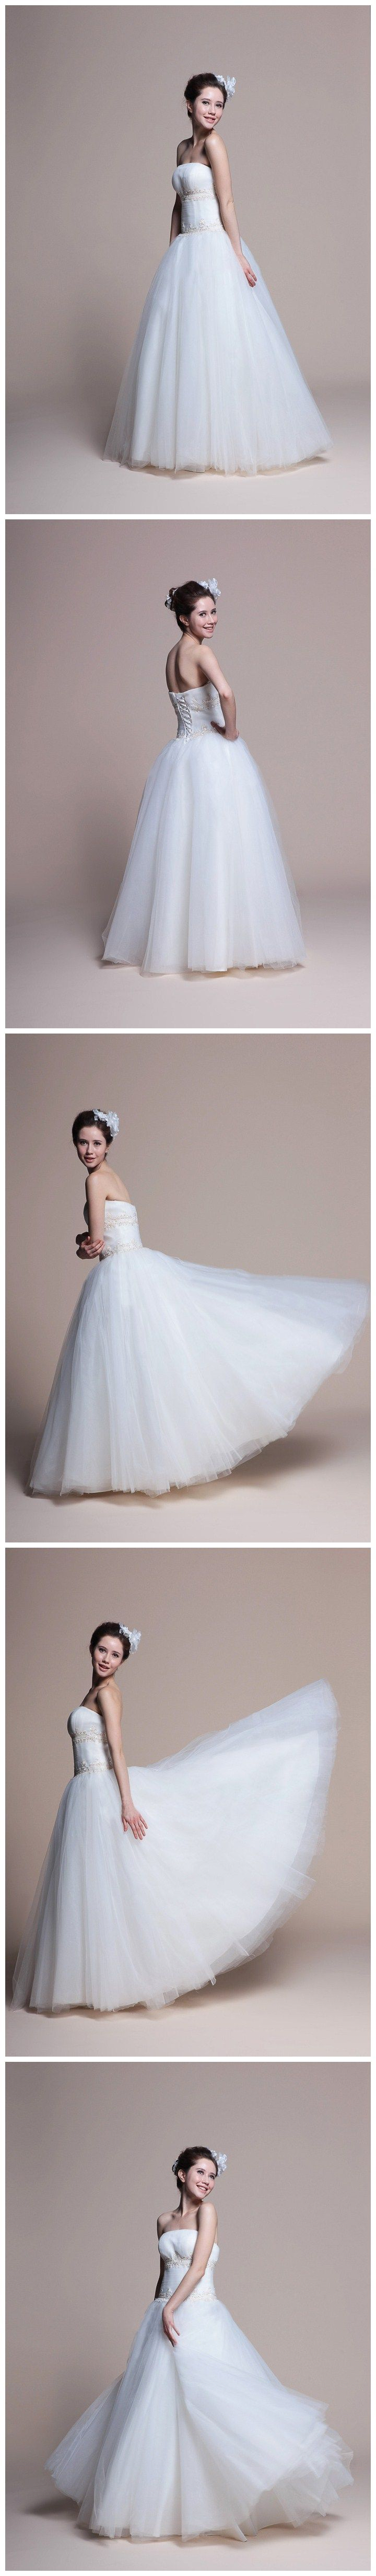 Wedding Dress for all :)